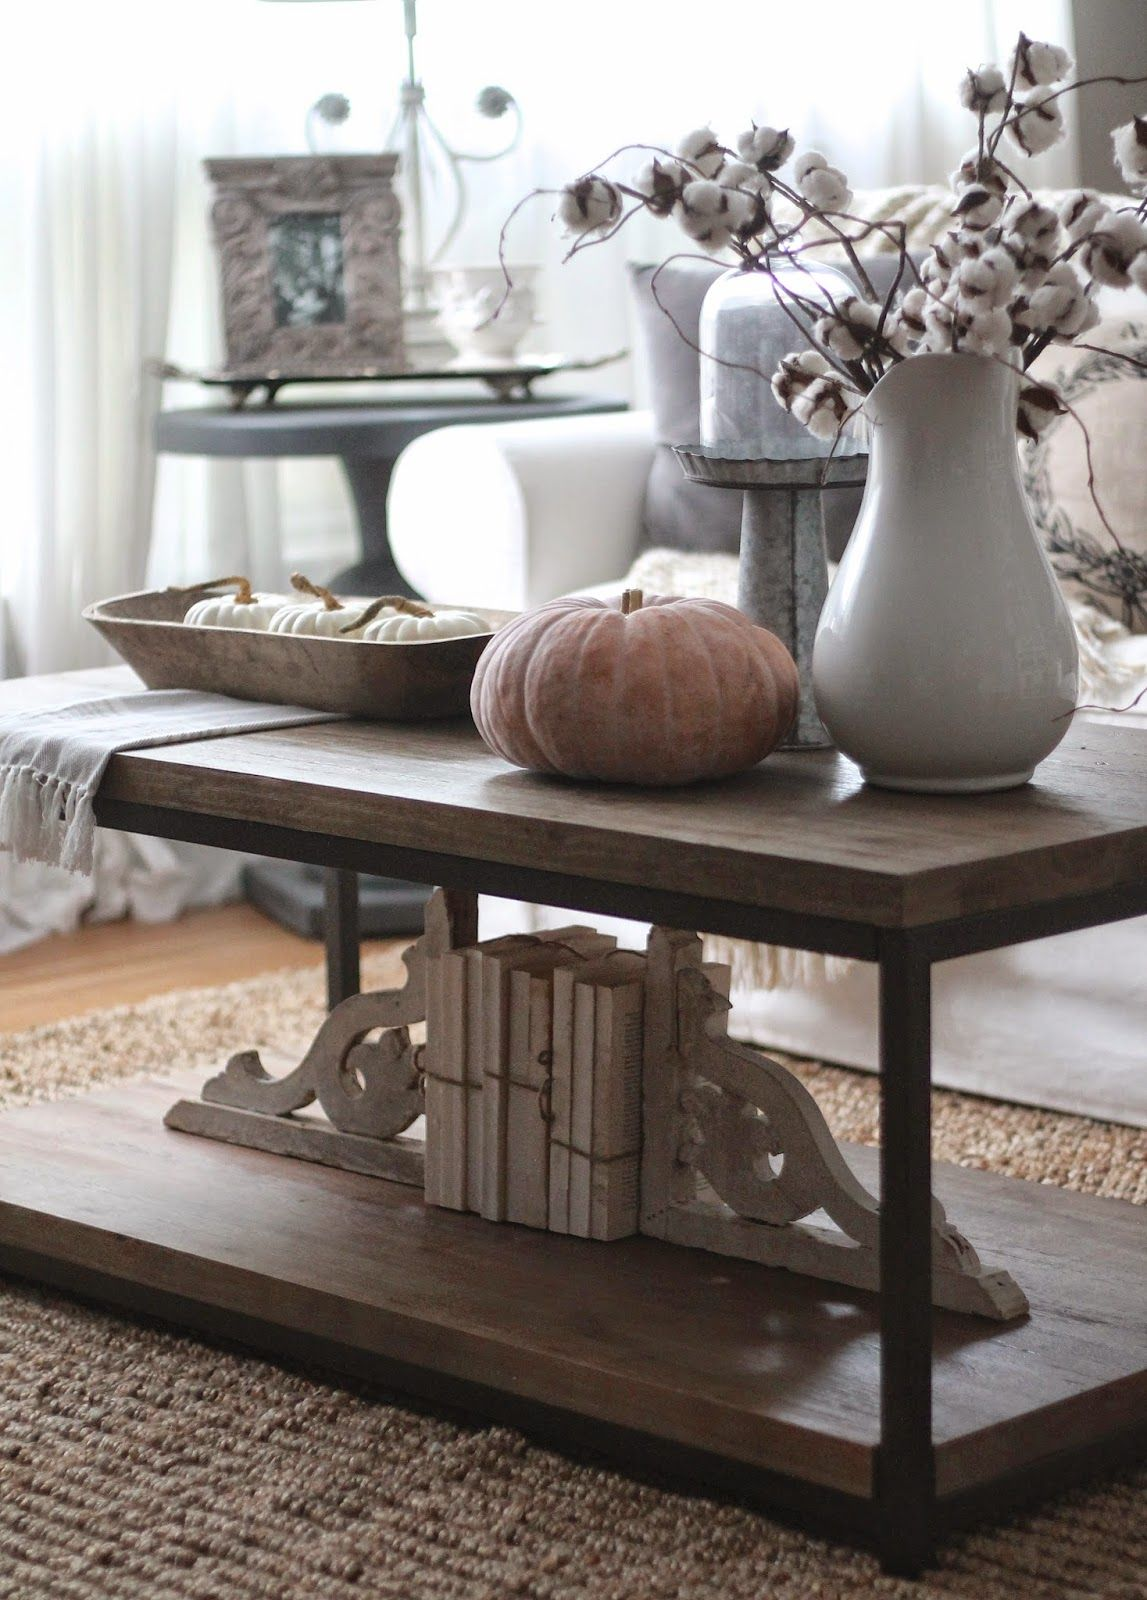 Best 3 Ways To Style A Coffee Table Decor Decorating Coffee 400 x 300